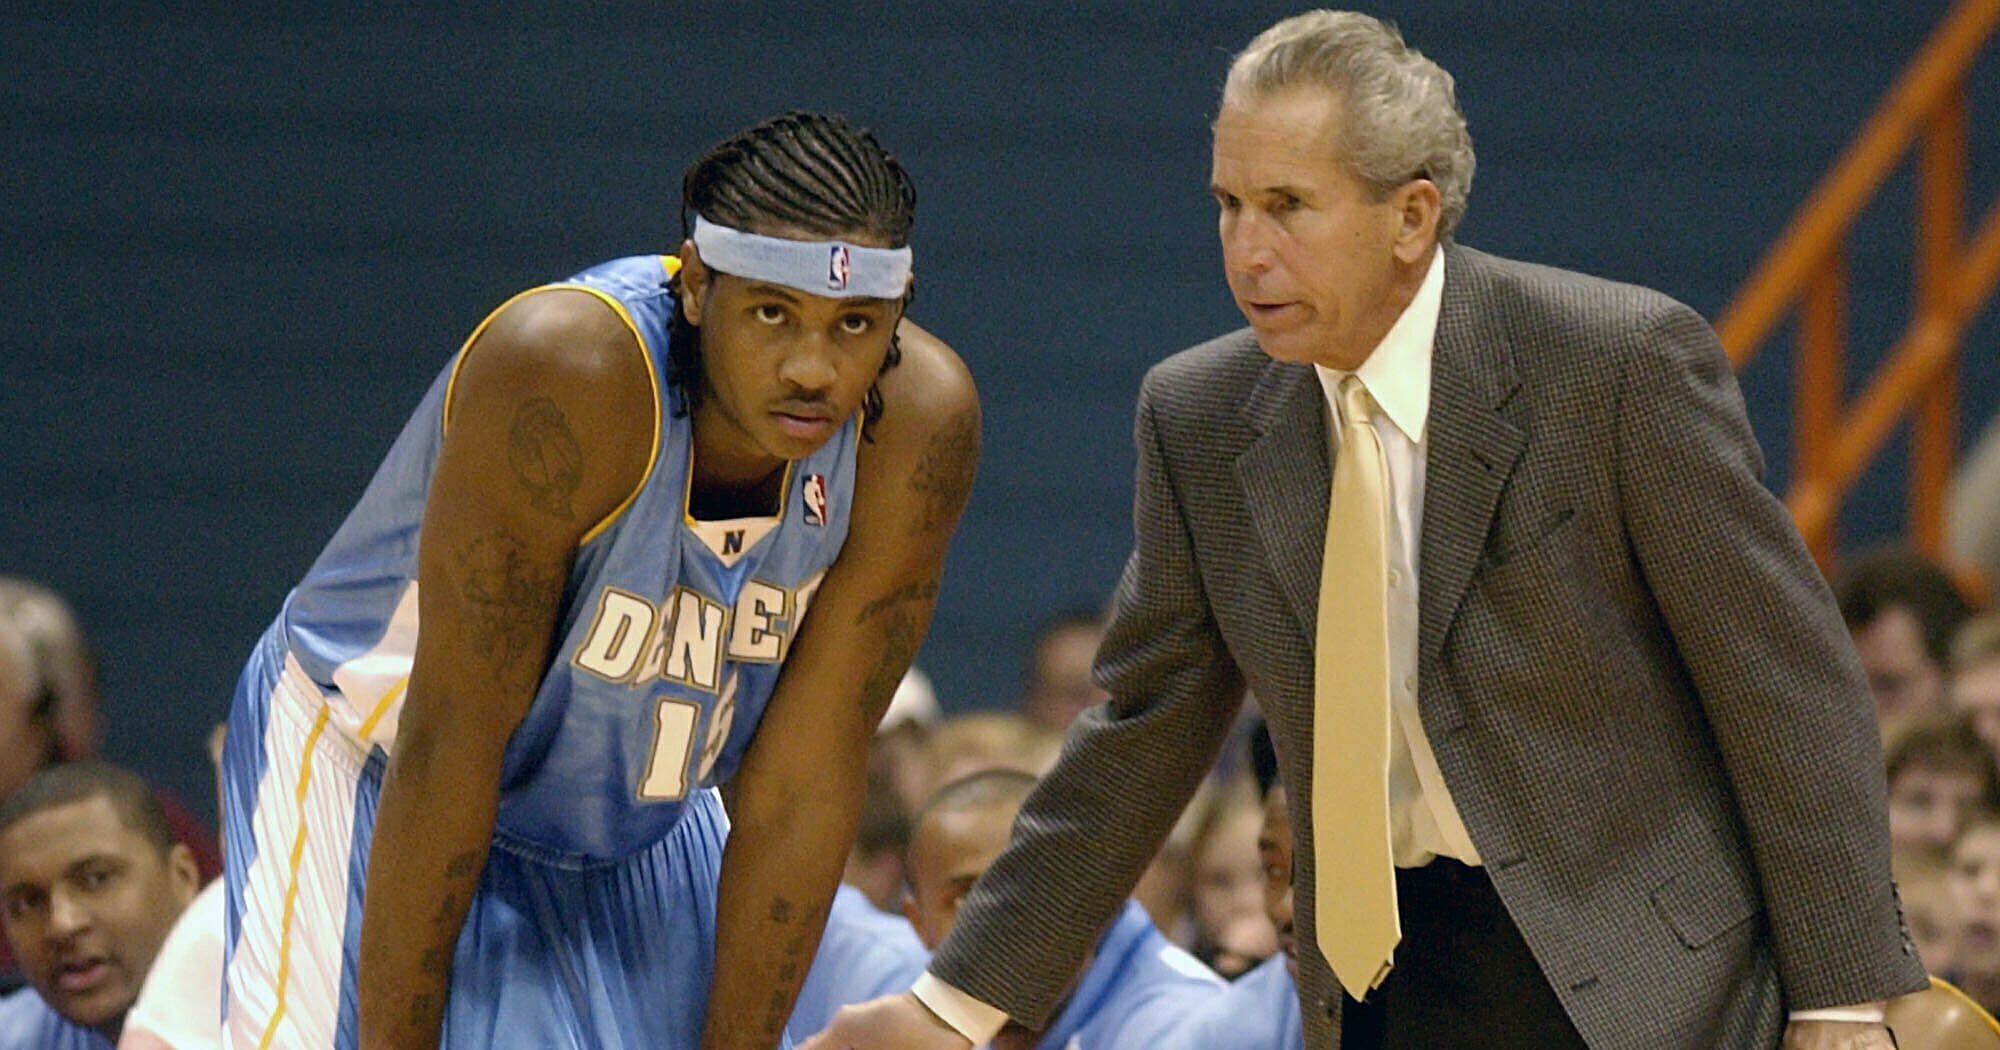 In this Sunday, Oct. 19, 2003, file photo, Denver Nuggets' Carmelo Anthony, left, receives instructions from assistant coach John MacLeod in the second period of a preseason game against the Detroit Pistons in Syracuse, N.Y.